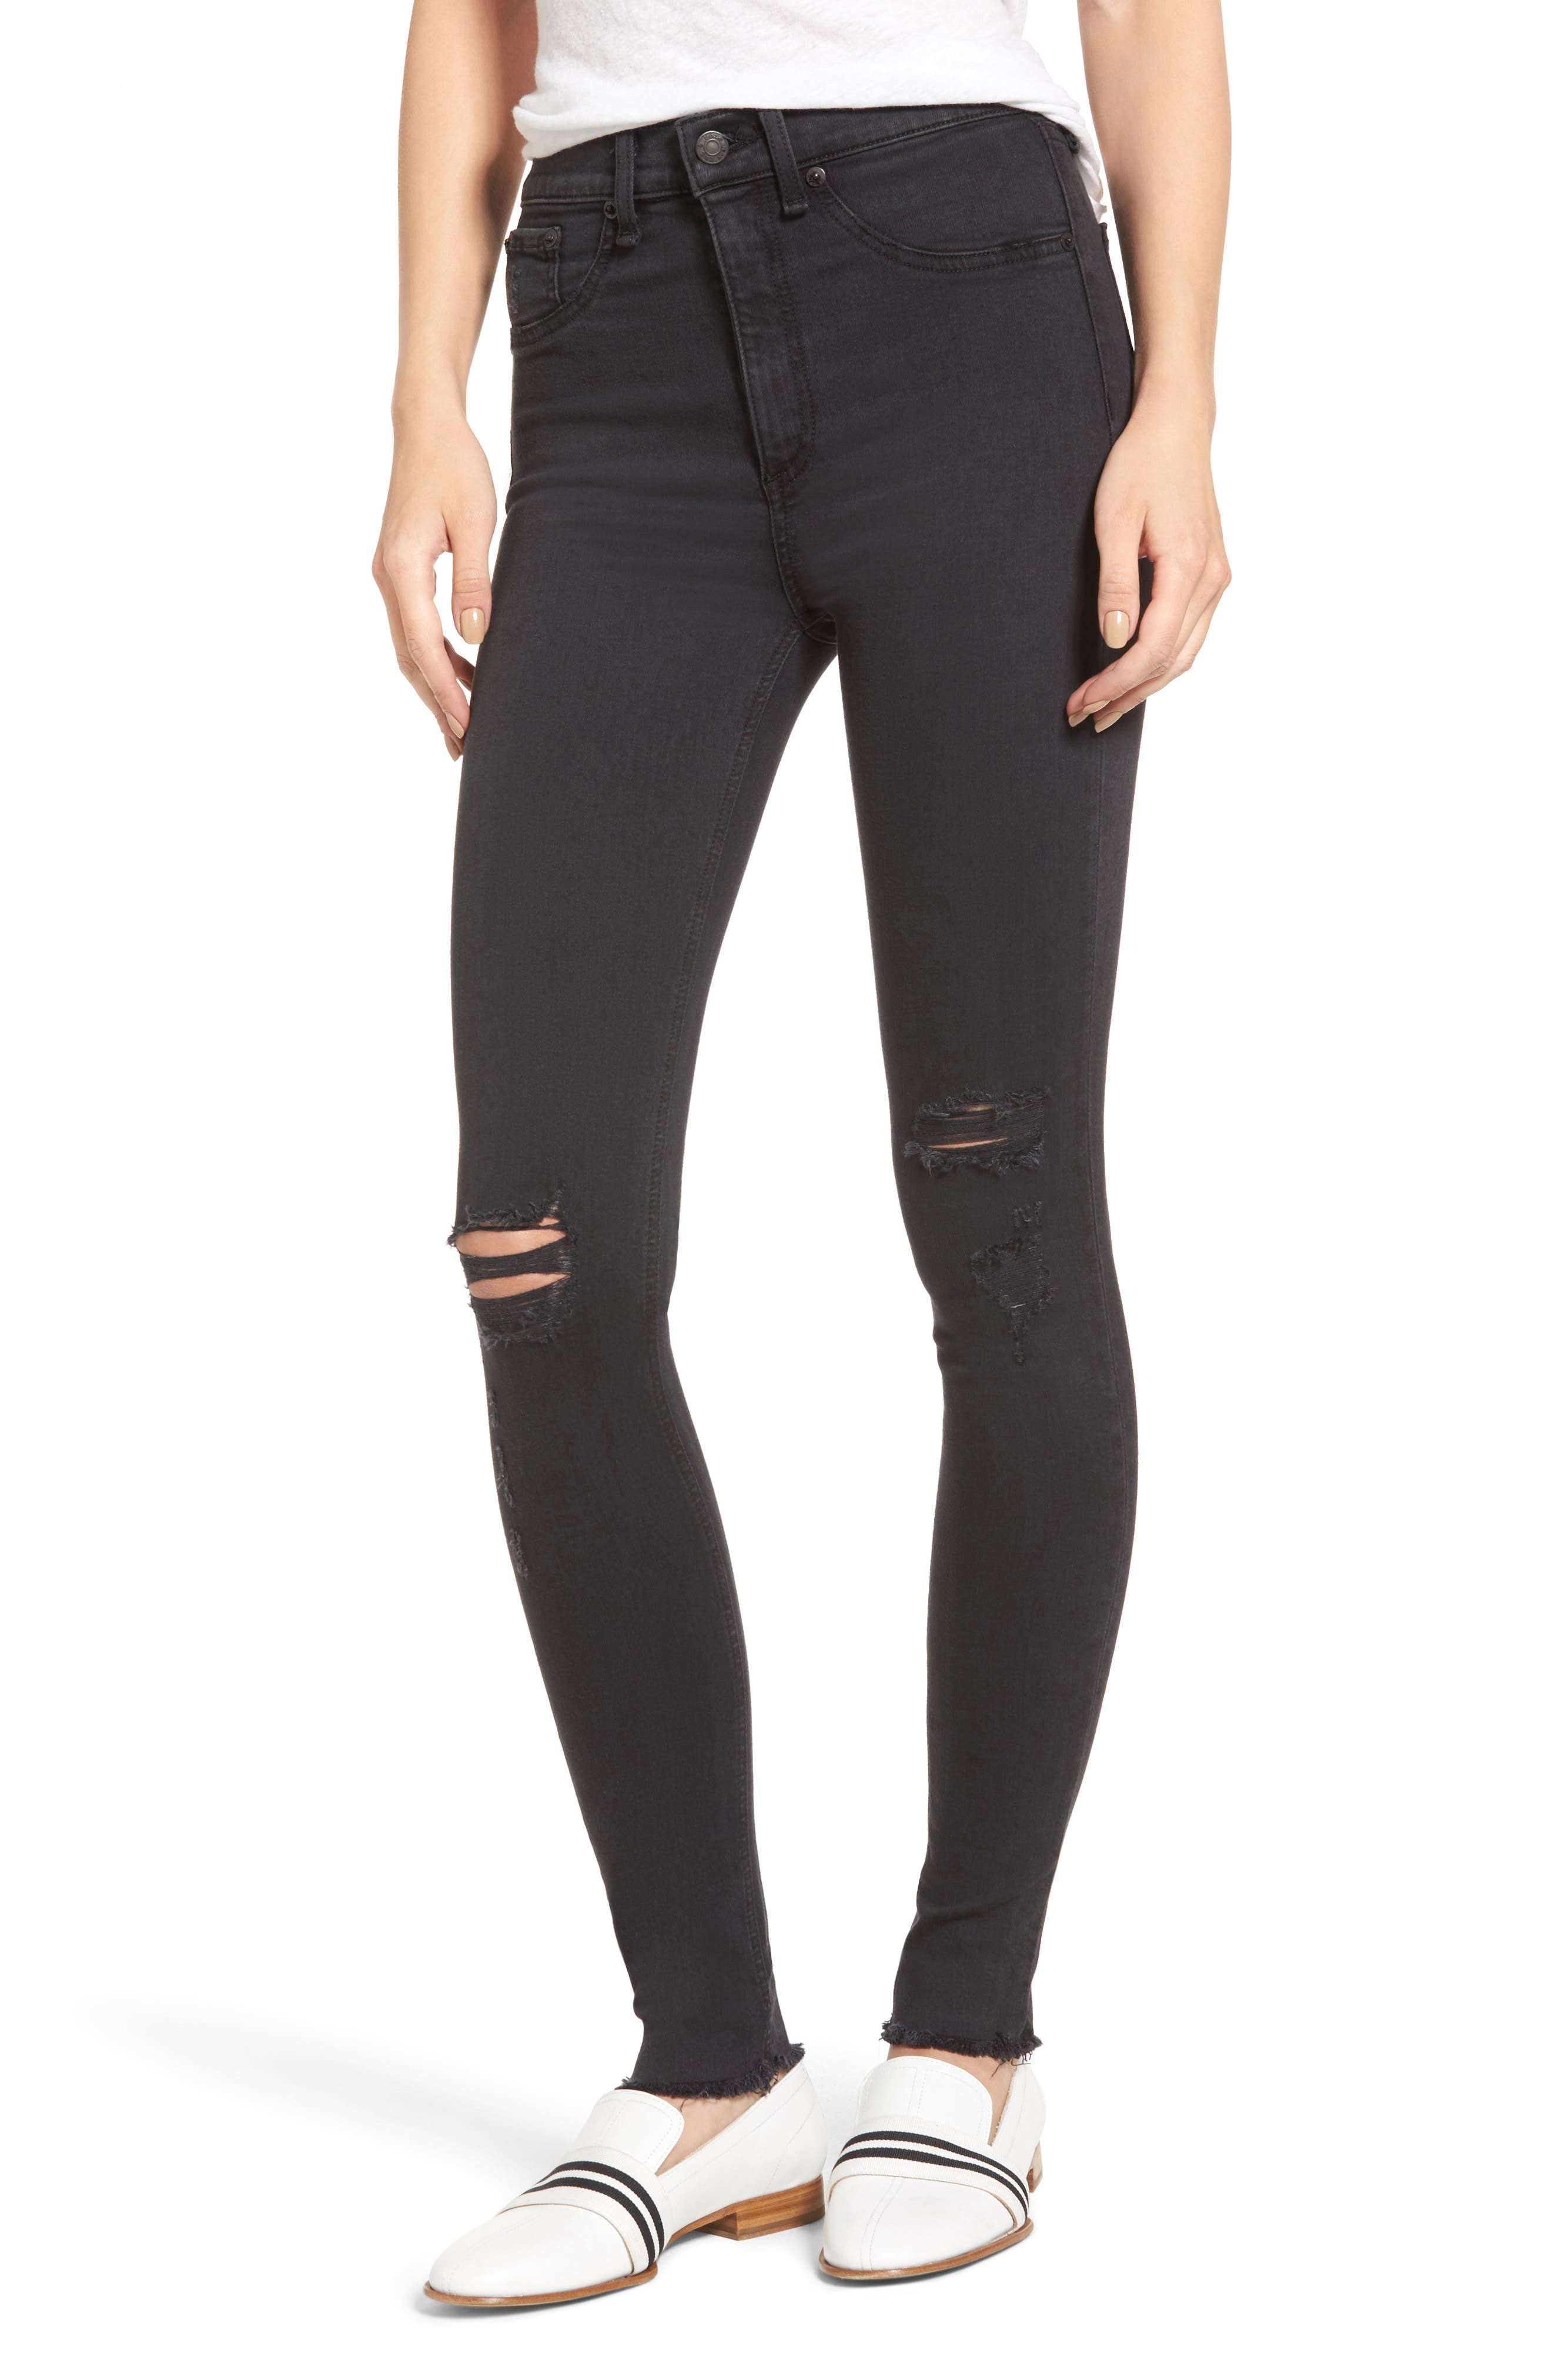 Alternate Image 1 Selected - rag & bone/JEAN Ripped High Waist Skinny Jeans (Night with Holes)